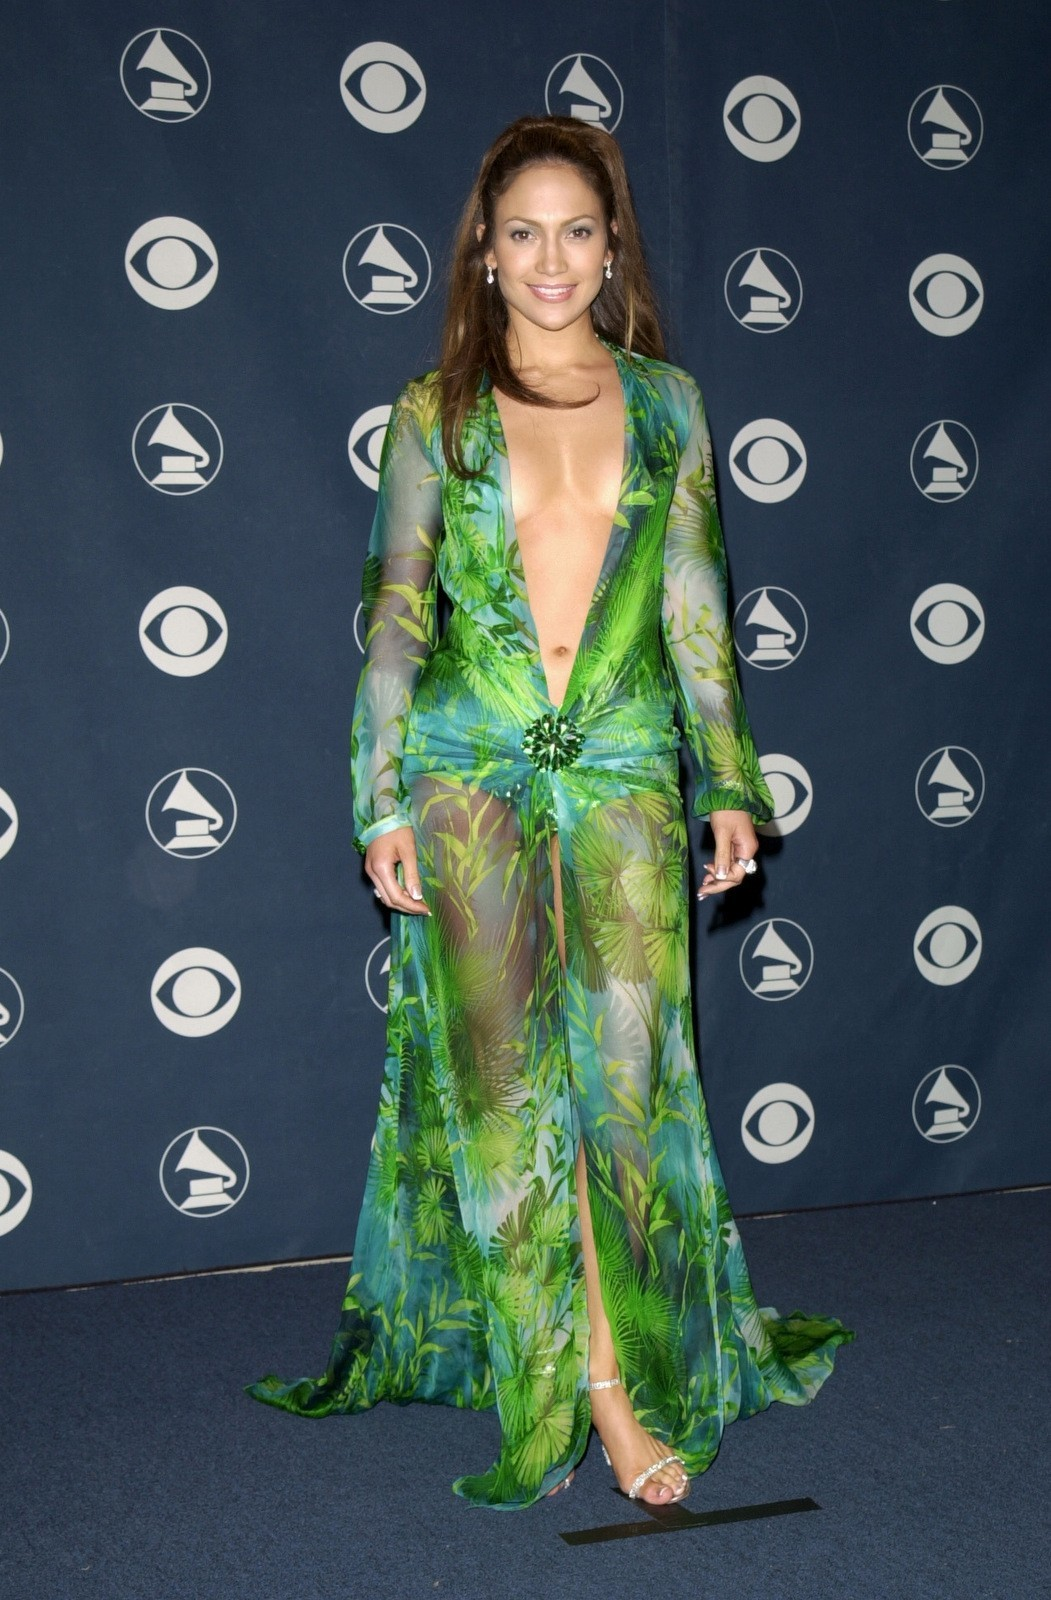 J.Lo Jennifer Lopez Grammy dress red carpet revealing